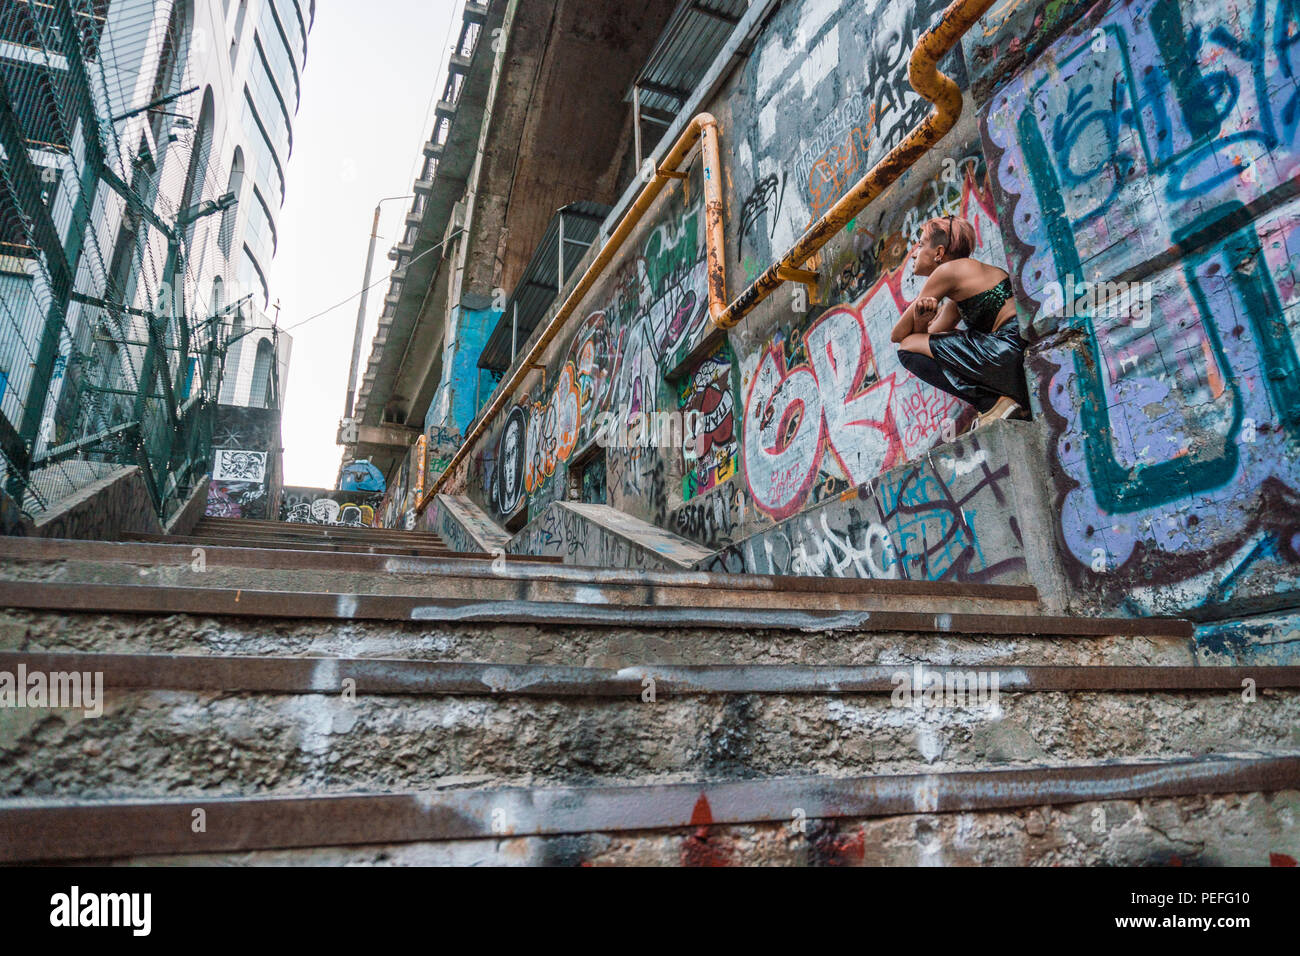 Wide Shot Of Street Punk Girl In Urban Girl Sitting On The Stairs Painted With Graffiti Under The Bridge